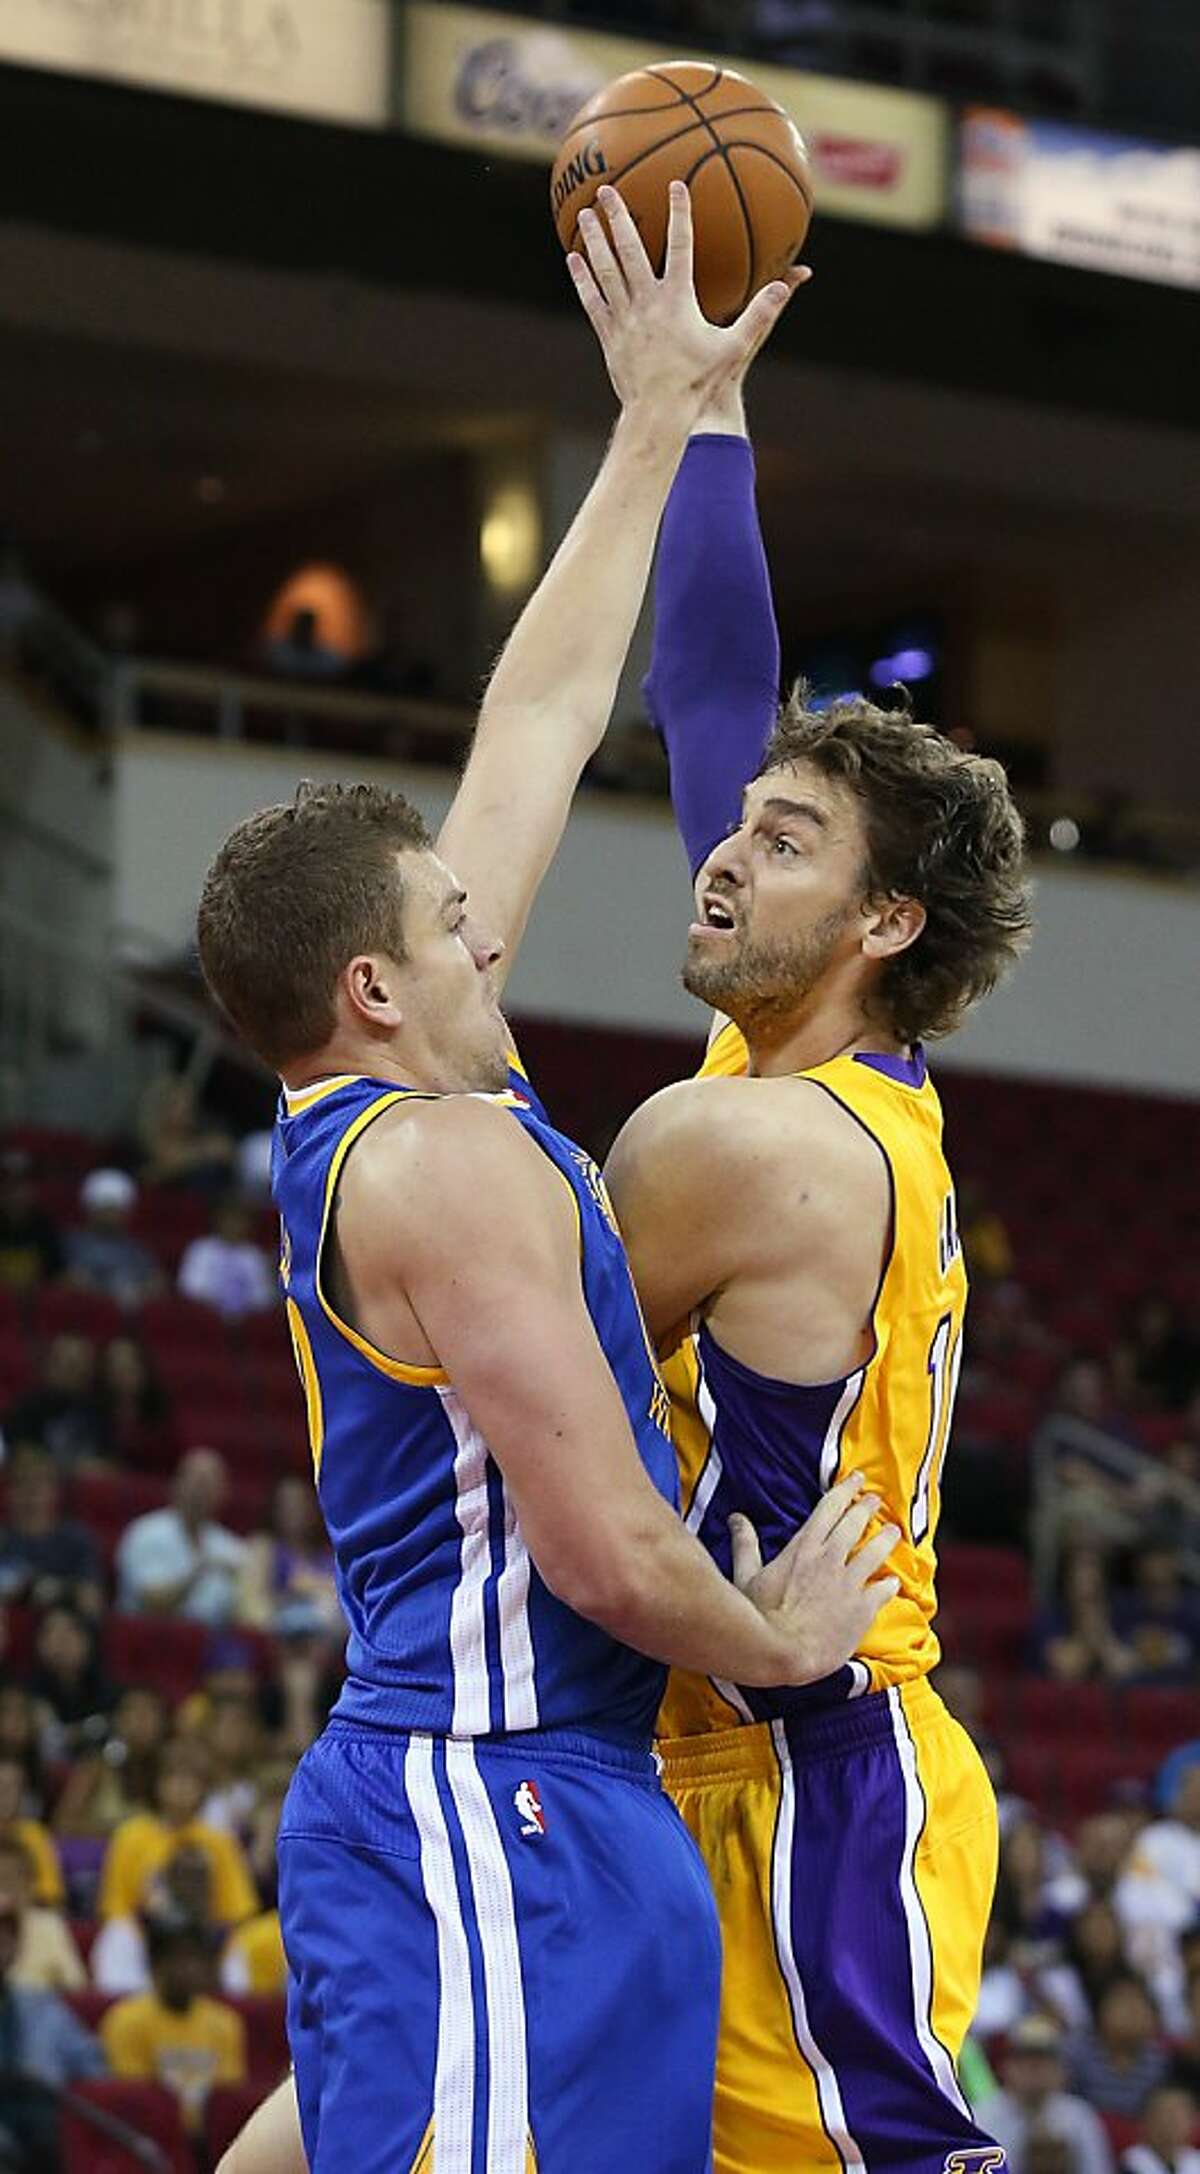 Los Angeles Lakers' Pau Gasol, right, of Spain, puts up a shot against Golden State Warriors defender David Lee in the first half of a preseason NBA basketball game in Fresno, Calif., Sunday, Oct. 7, 2012. (AP Photo/Gary Kazanjian)